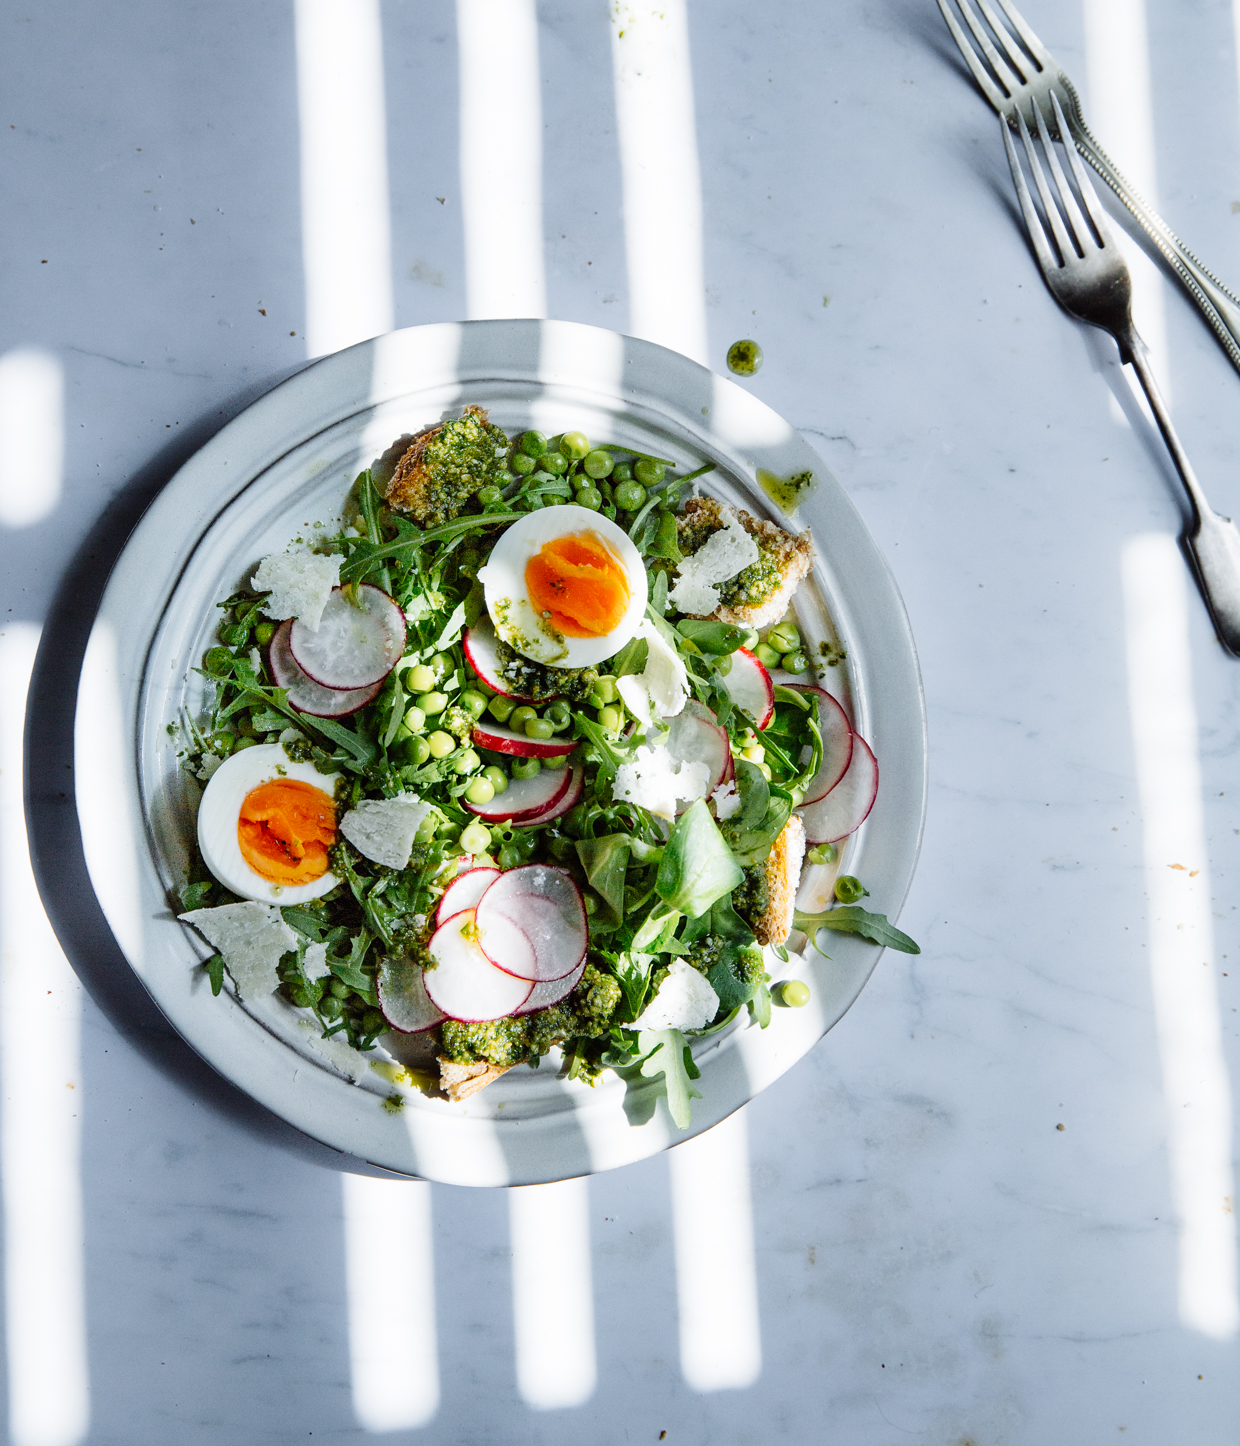 Pea, pesto & egg salad with radishes & sourdough